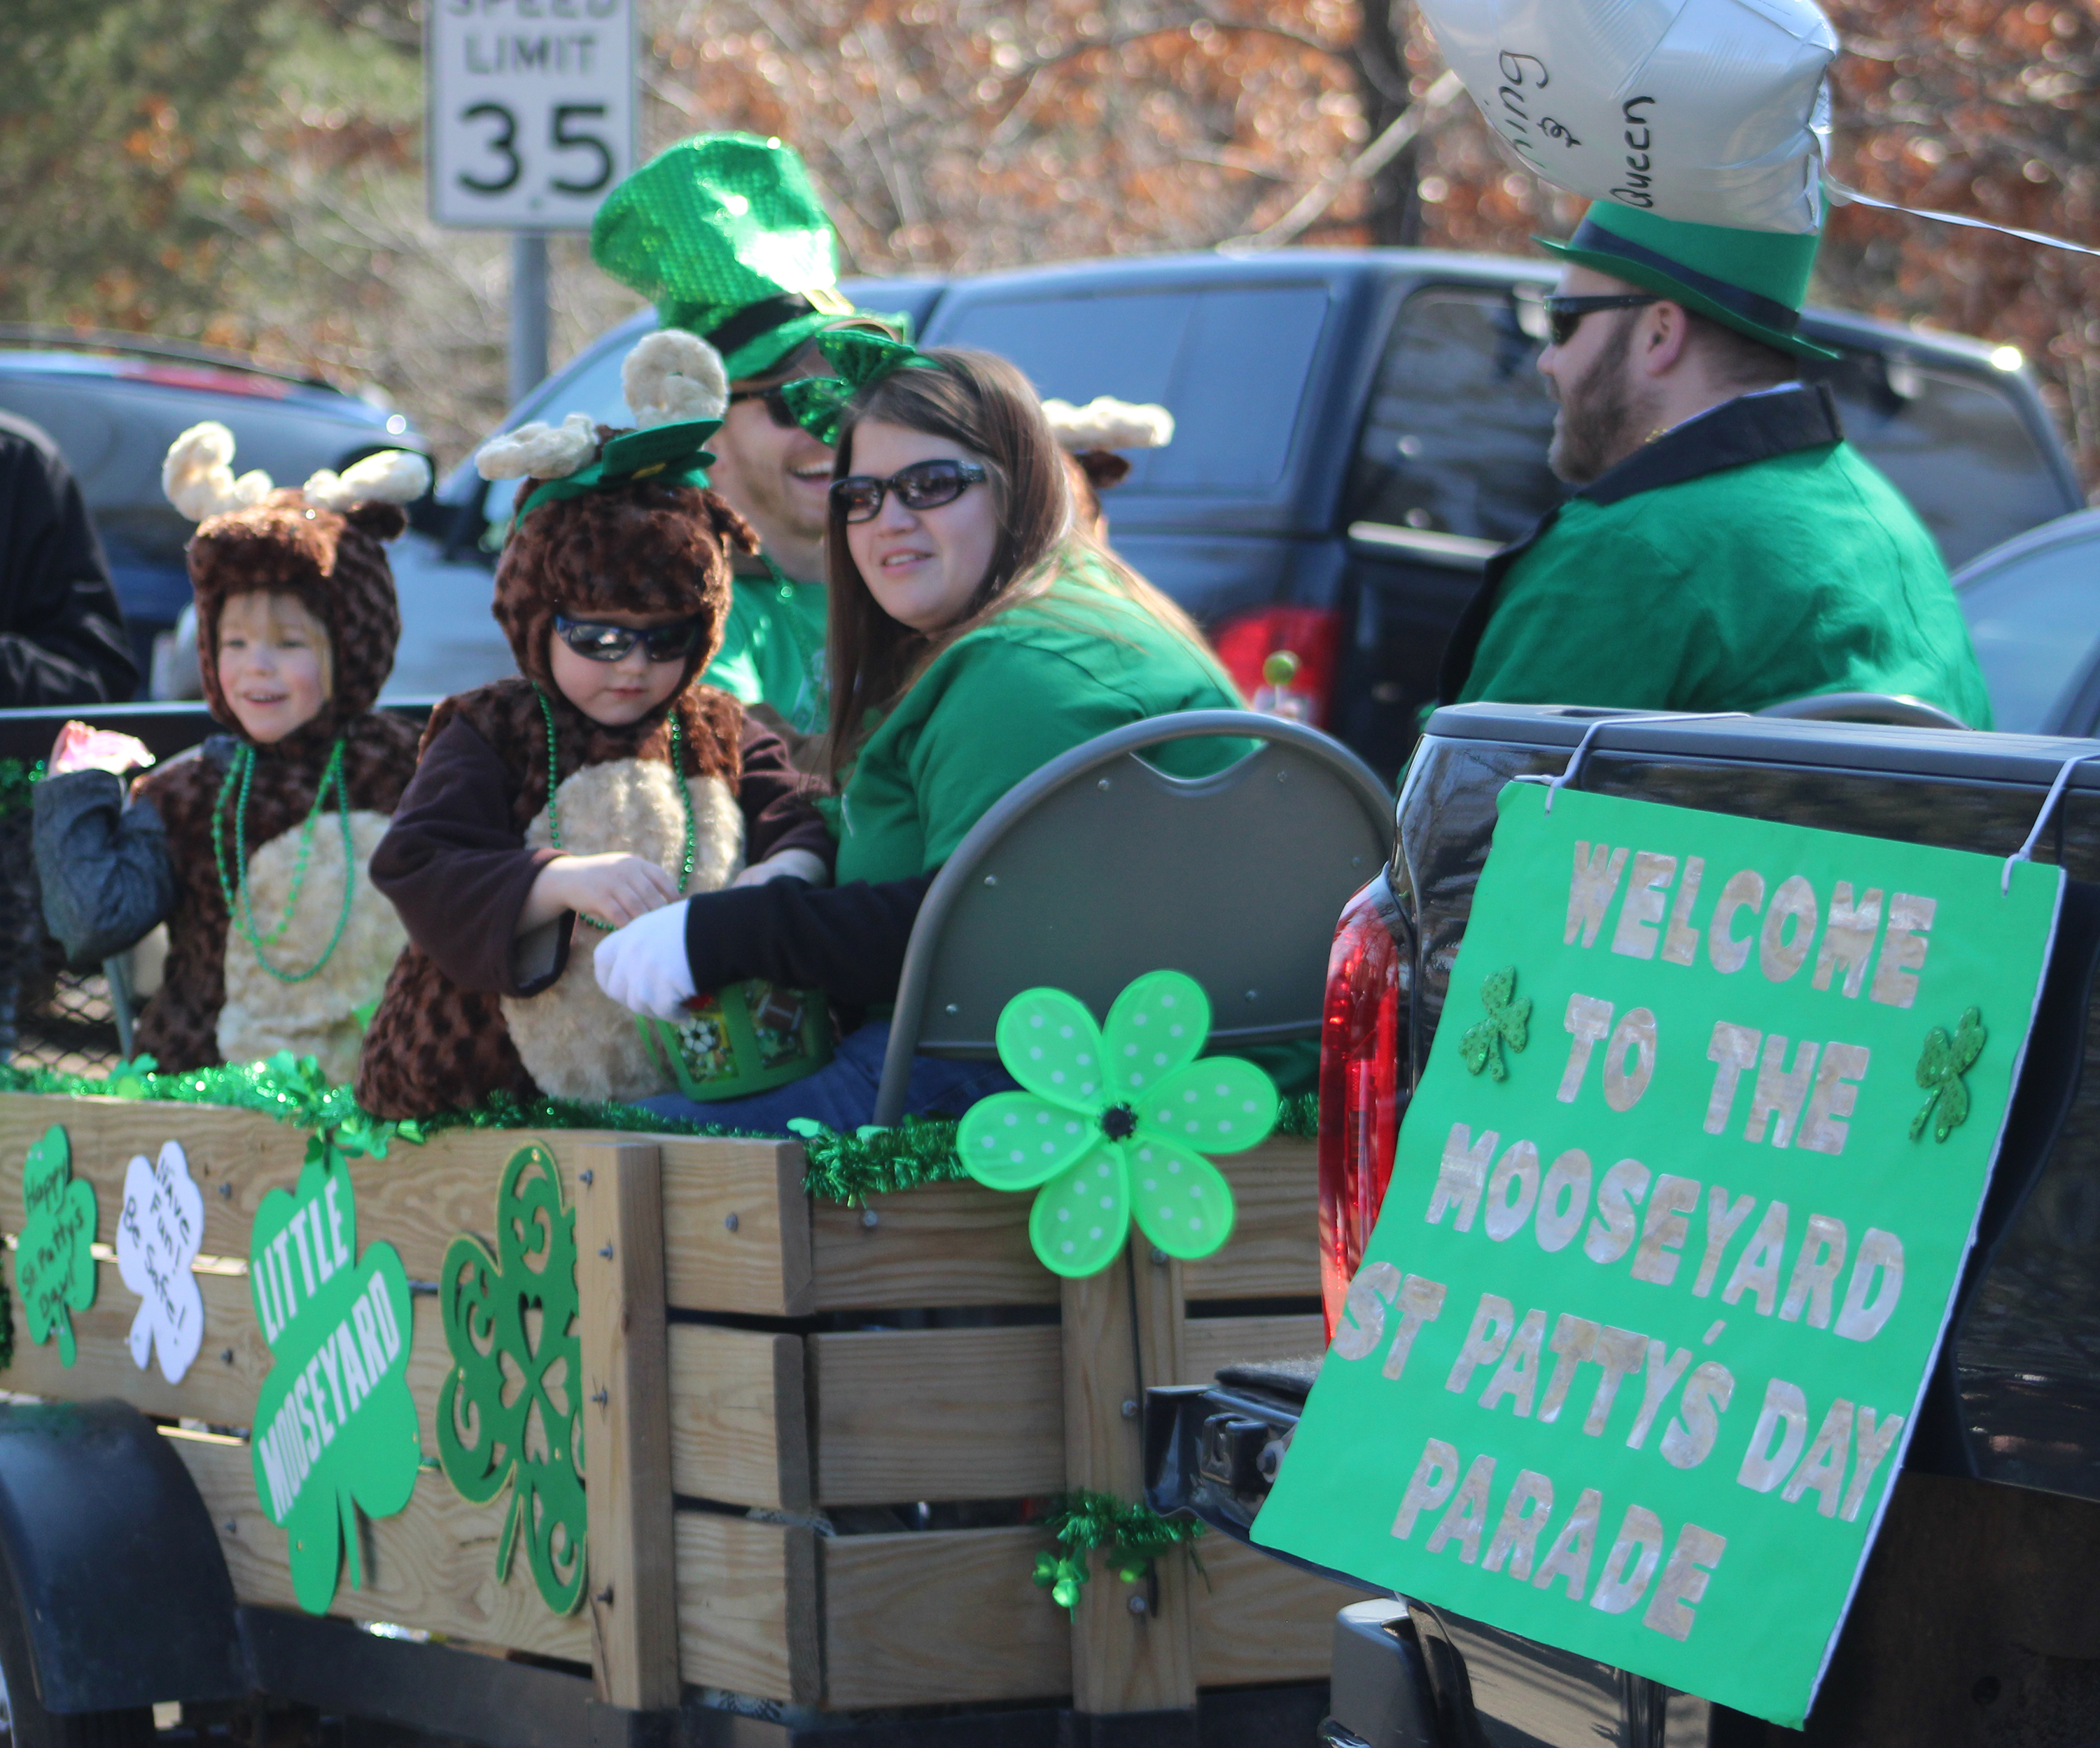 Plenty of folks wearing green or dressing up as moose could be found on the Little Mooseyard float, one of the first floats in the 2021 St. Patrick's Day parade welcoming visitors to the parade. Both sides of the street were packed with people excited to get out and enjoy a parade after COVID-19 canceled more than a year's worth of events throughout the area.(Lee Pulaski   NEW Media)